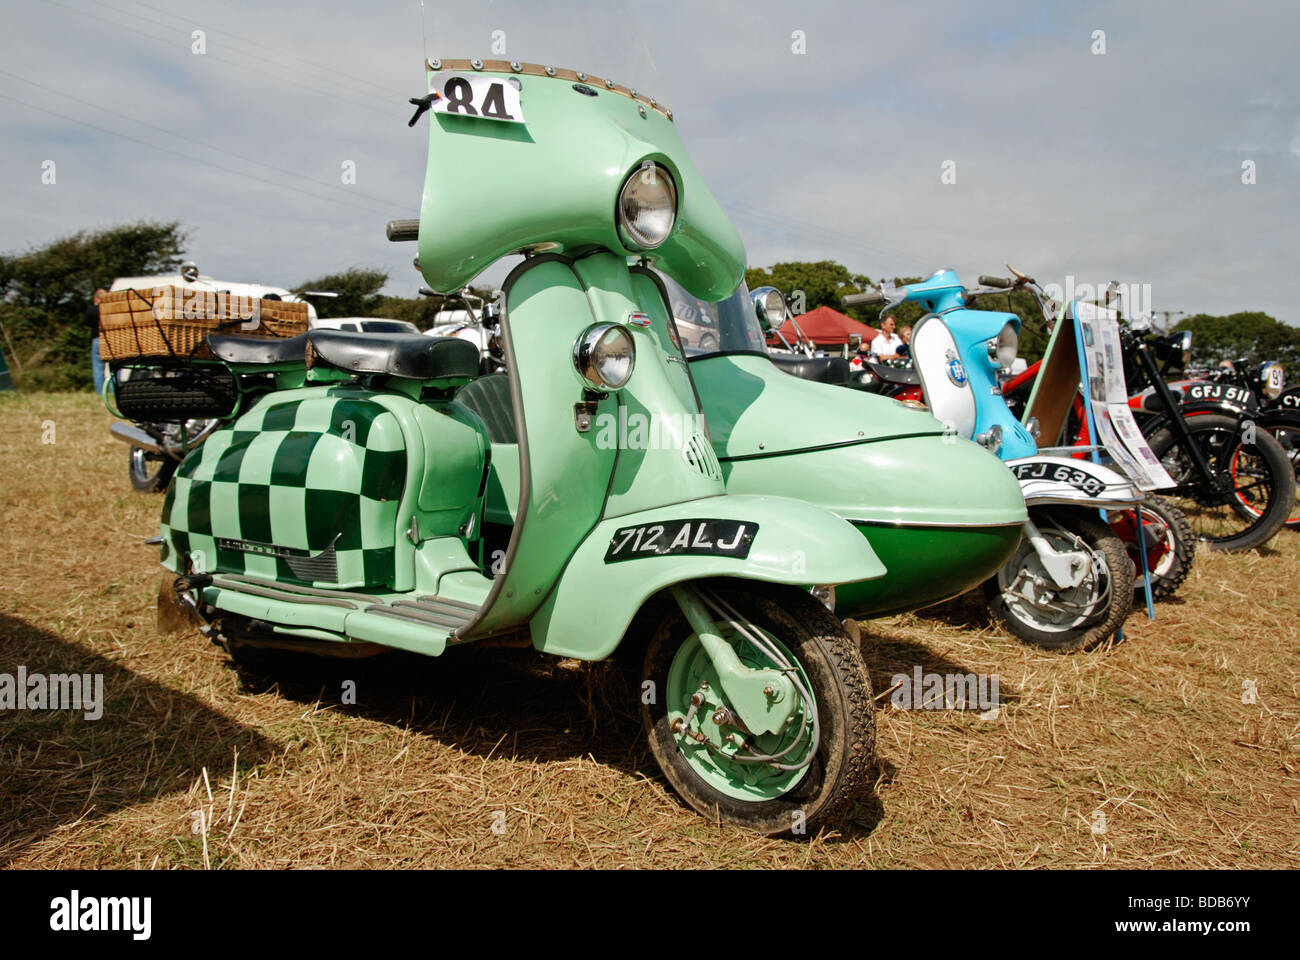 a nineteen sixties lambretta scooter at a vintage vehicle rally in cornwall, uk - Stock Image